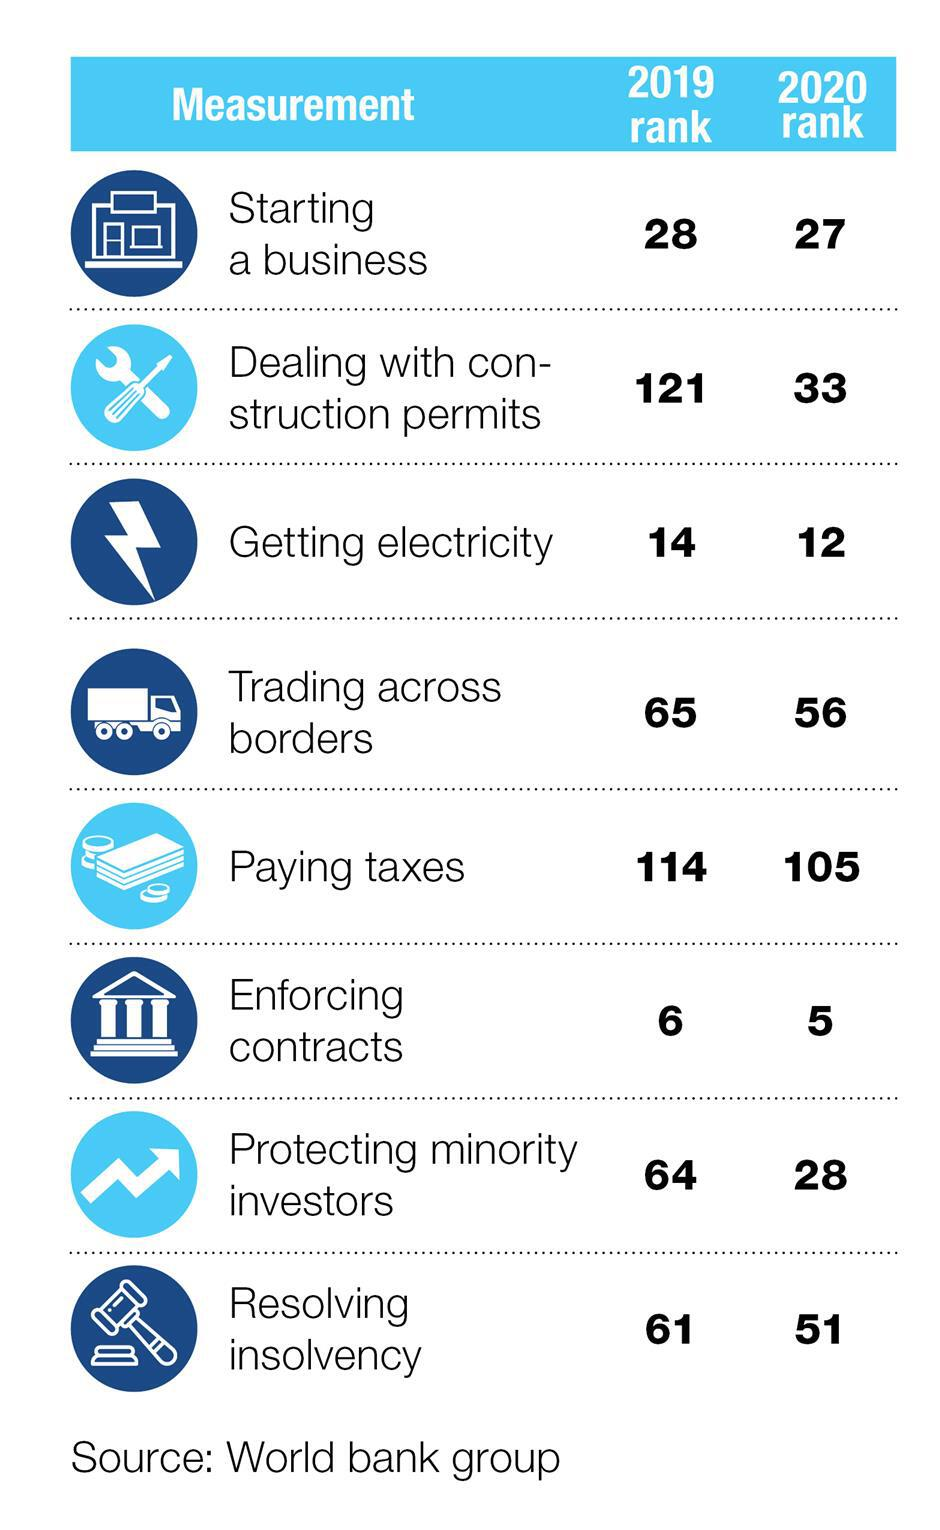 China jumps 15 places to 31 in WB ranking for ease of doing business